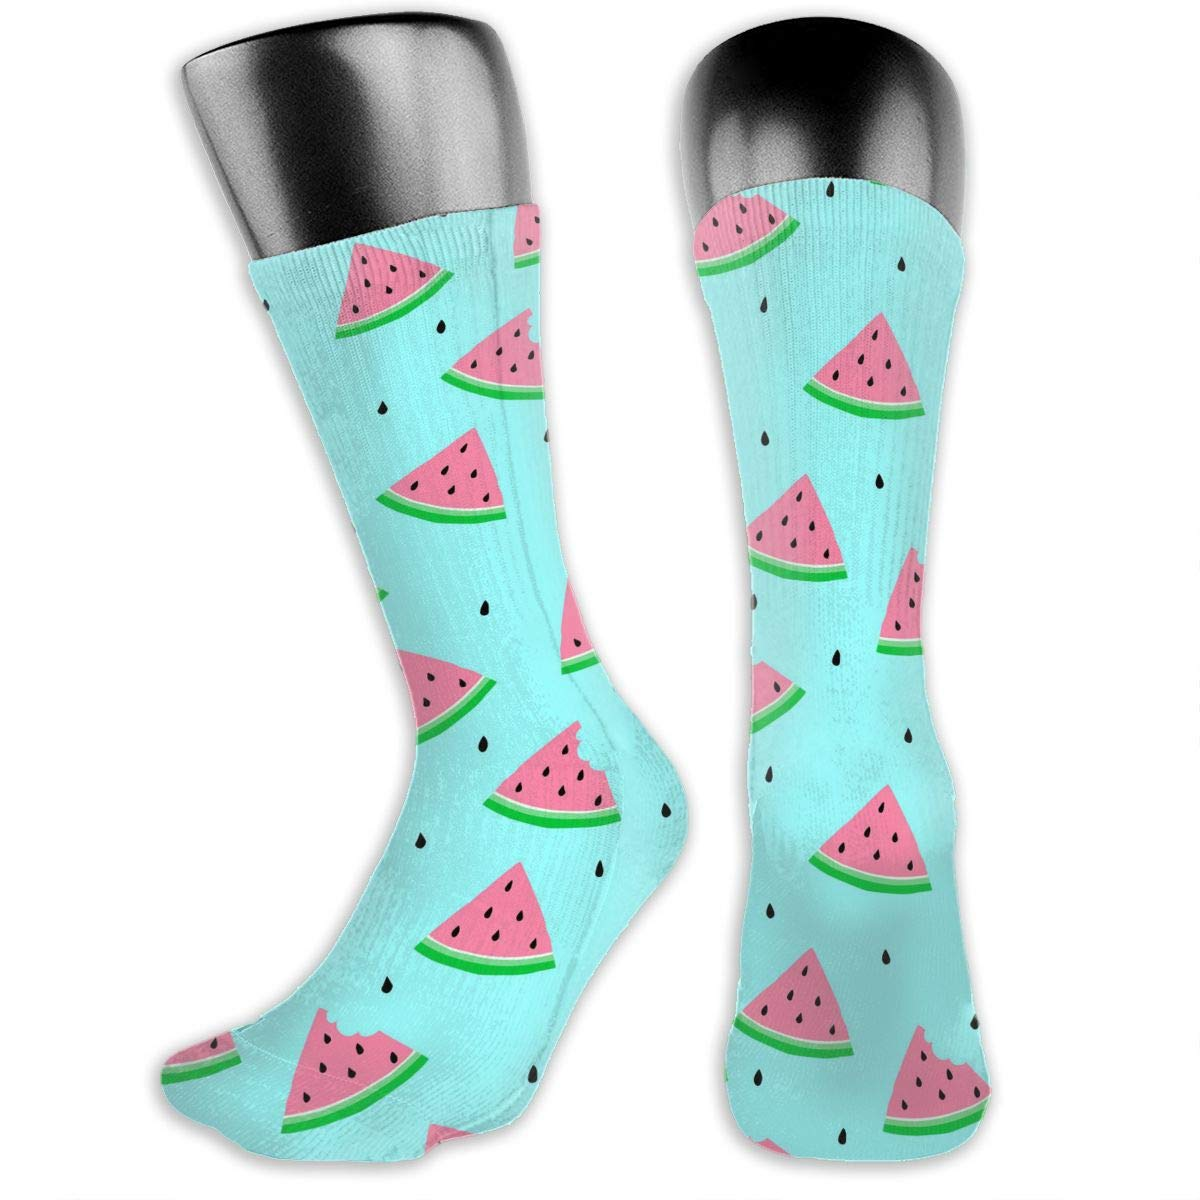 OLGCZM Watermelon Pattern Men Womens Thin High Ankle Casual Socks Fit Outdoor Hiking Trail